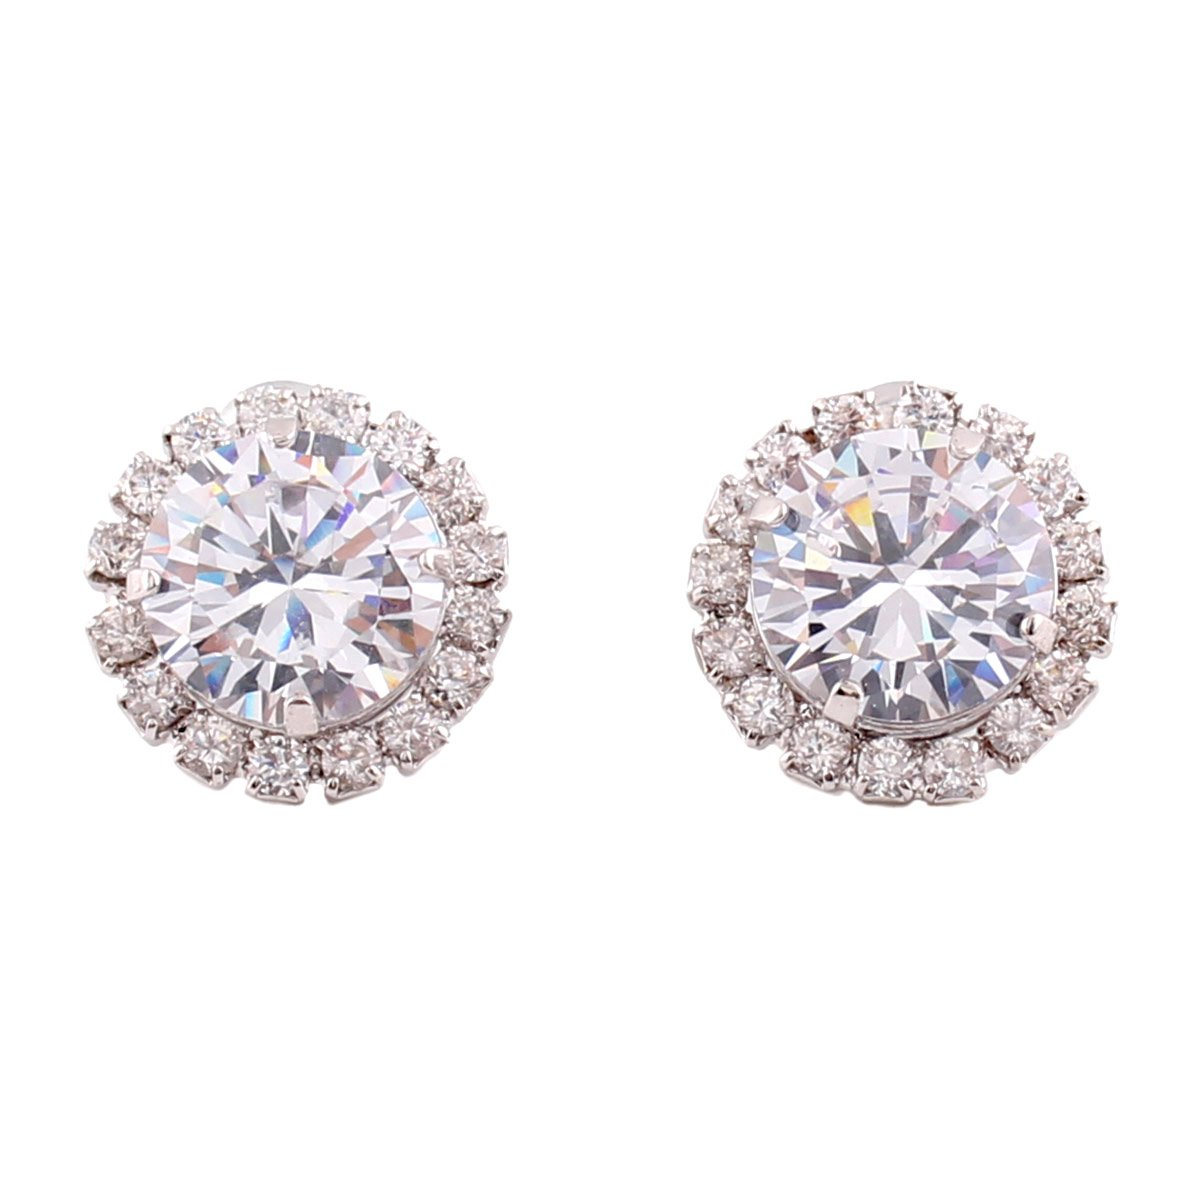 Grace Jun Platinum Plated Round Cubic Zircon Stud Earrings and Clip on Earrings Without Piercing China XHEJ74A